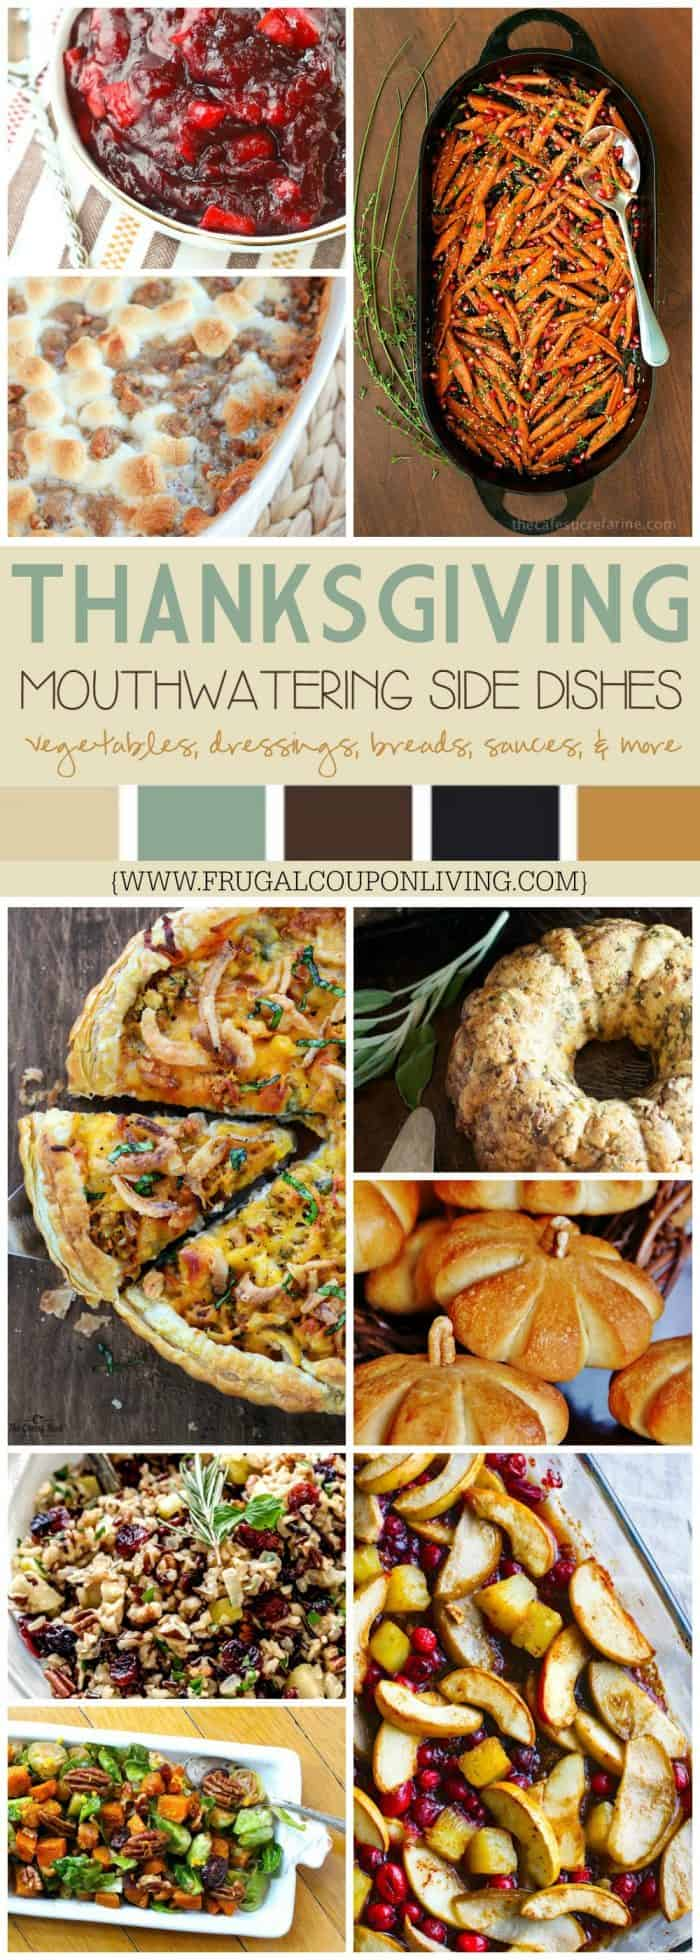 Thanksgiving-Side-Dishes-frugal-coupon-living-long